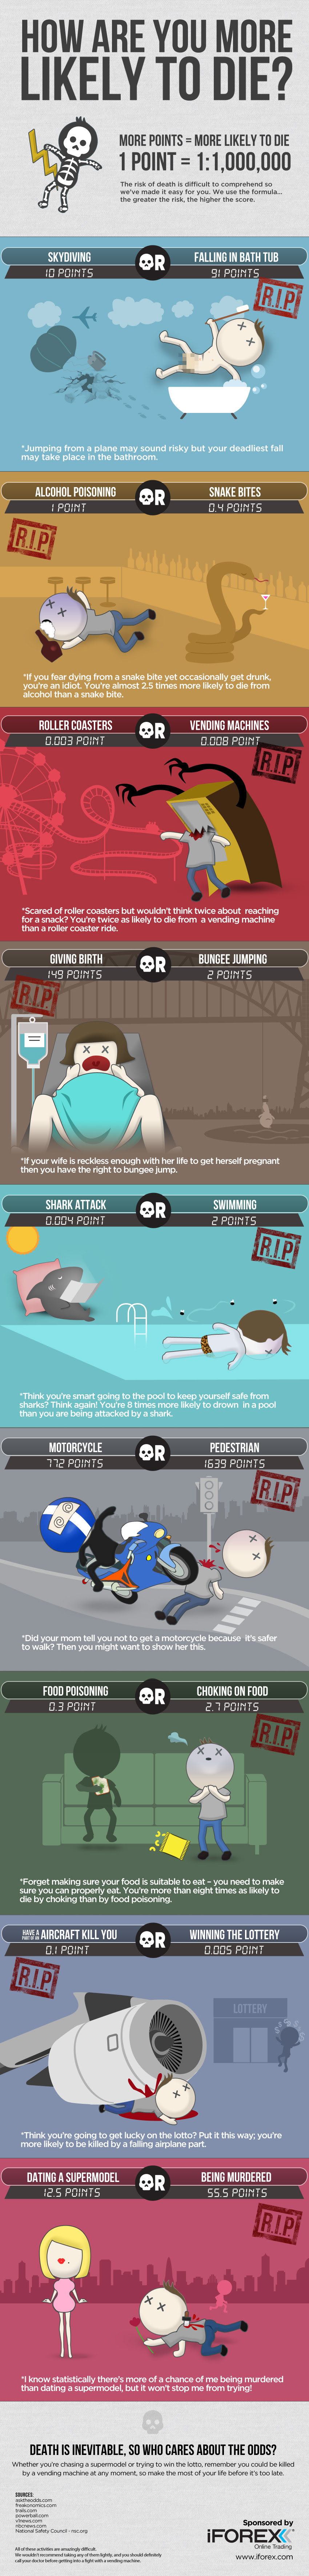 Infographic: How Are You More likely To Die?